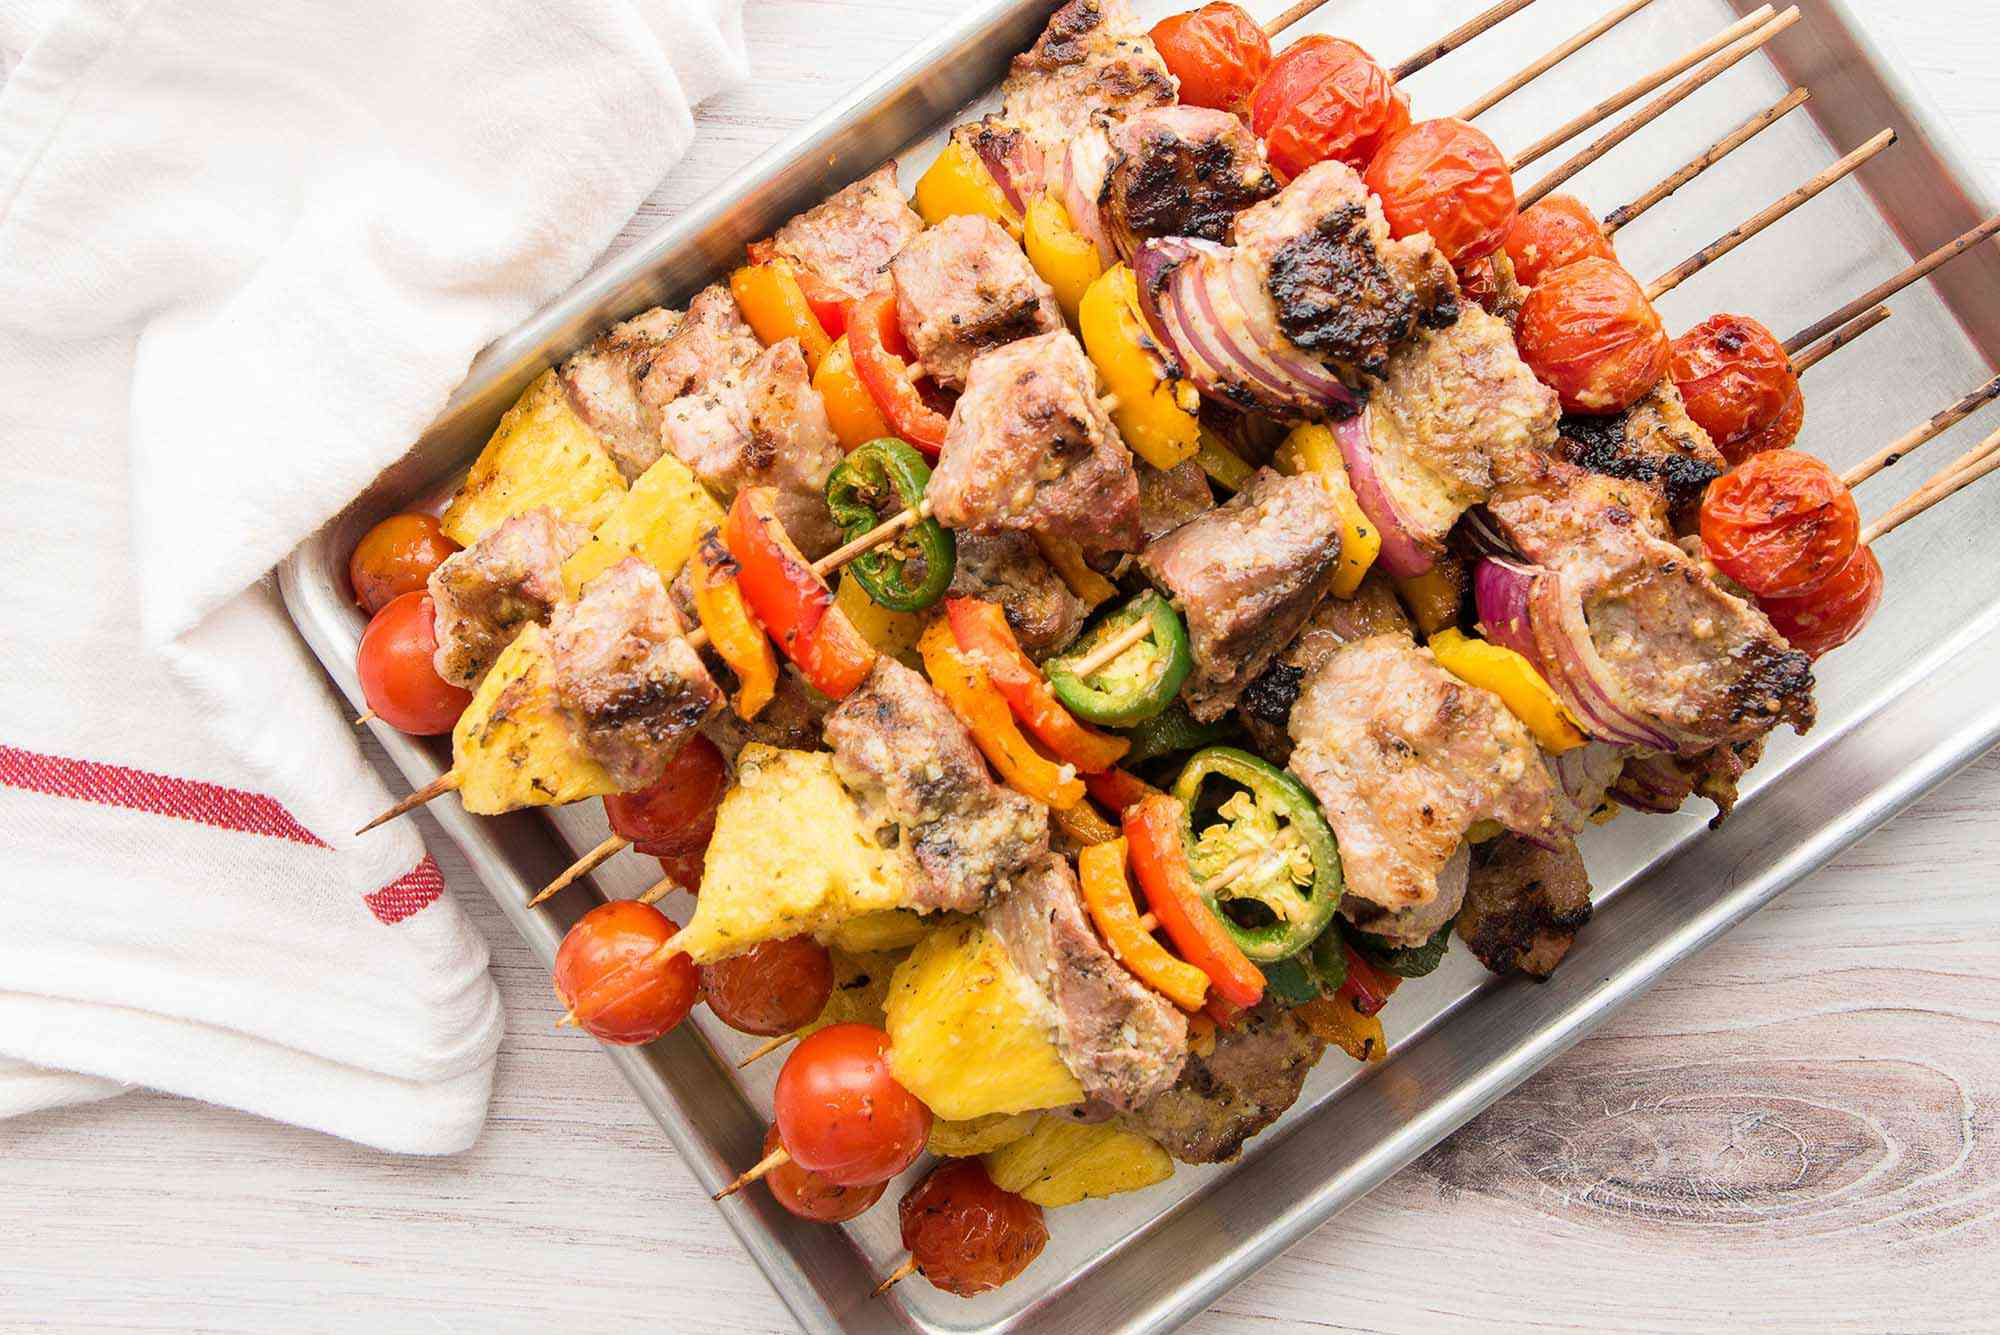 A quarter sheet pan has pork kebabs with grilled pineapple stacked on it.